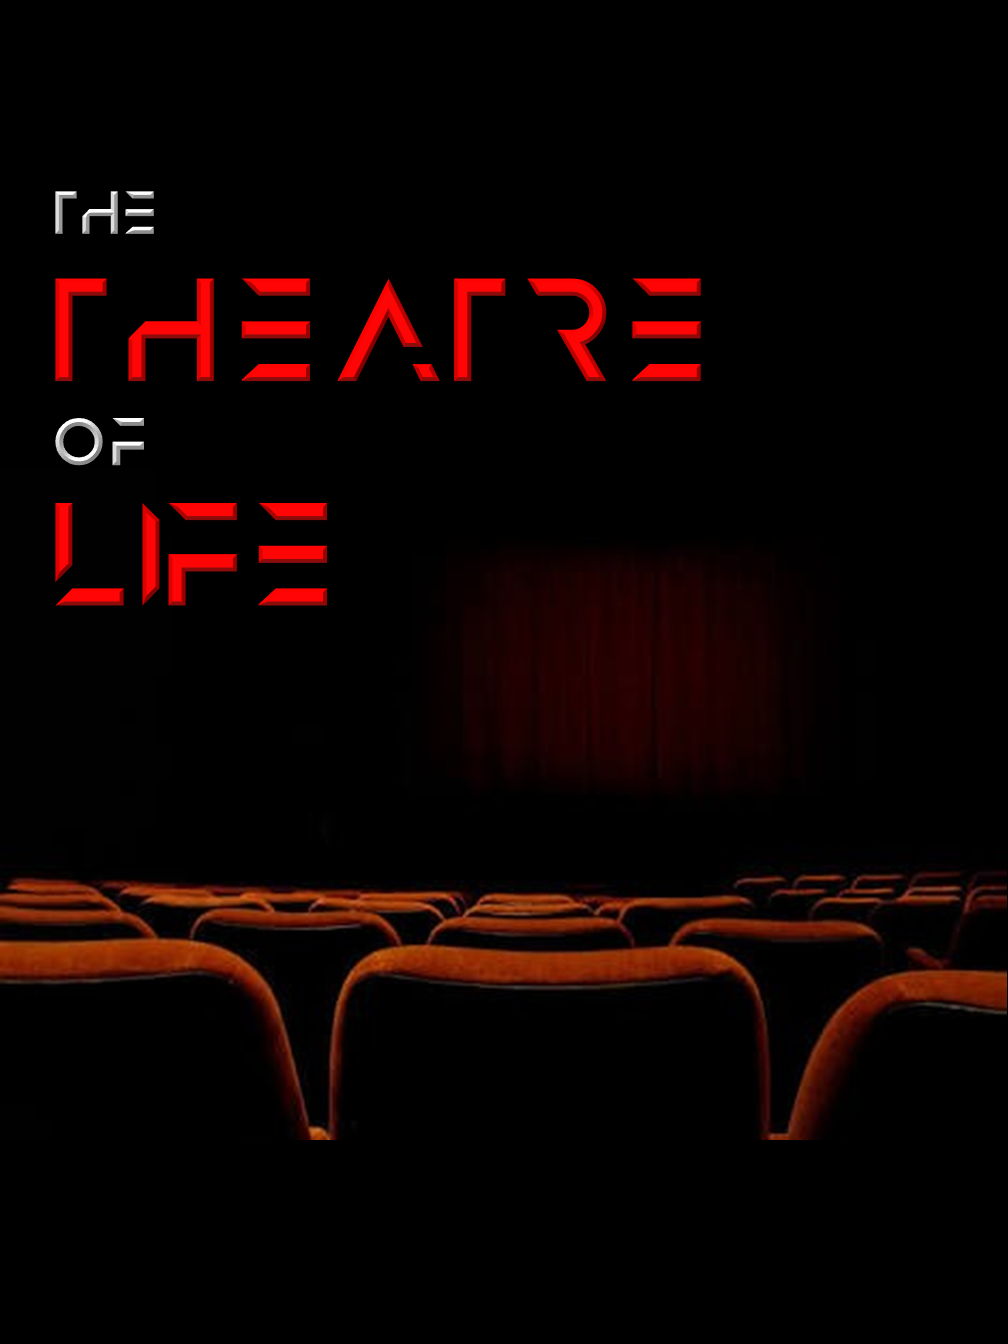 The Theatre of Life